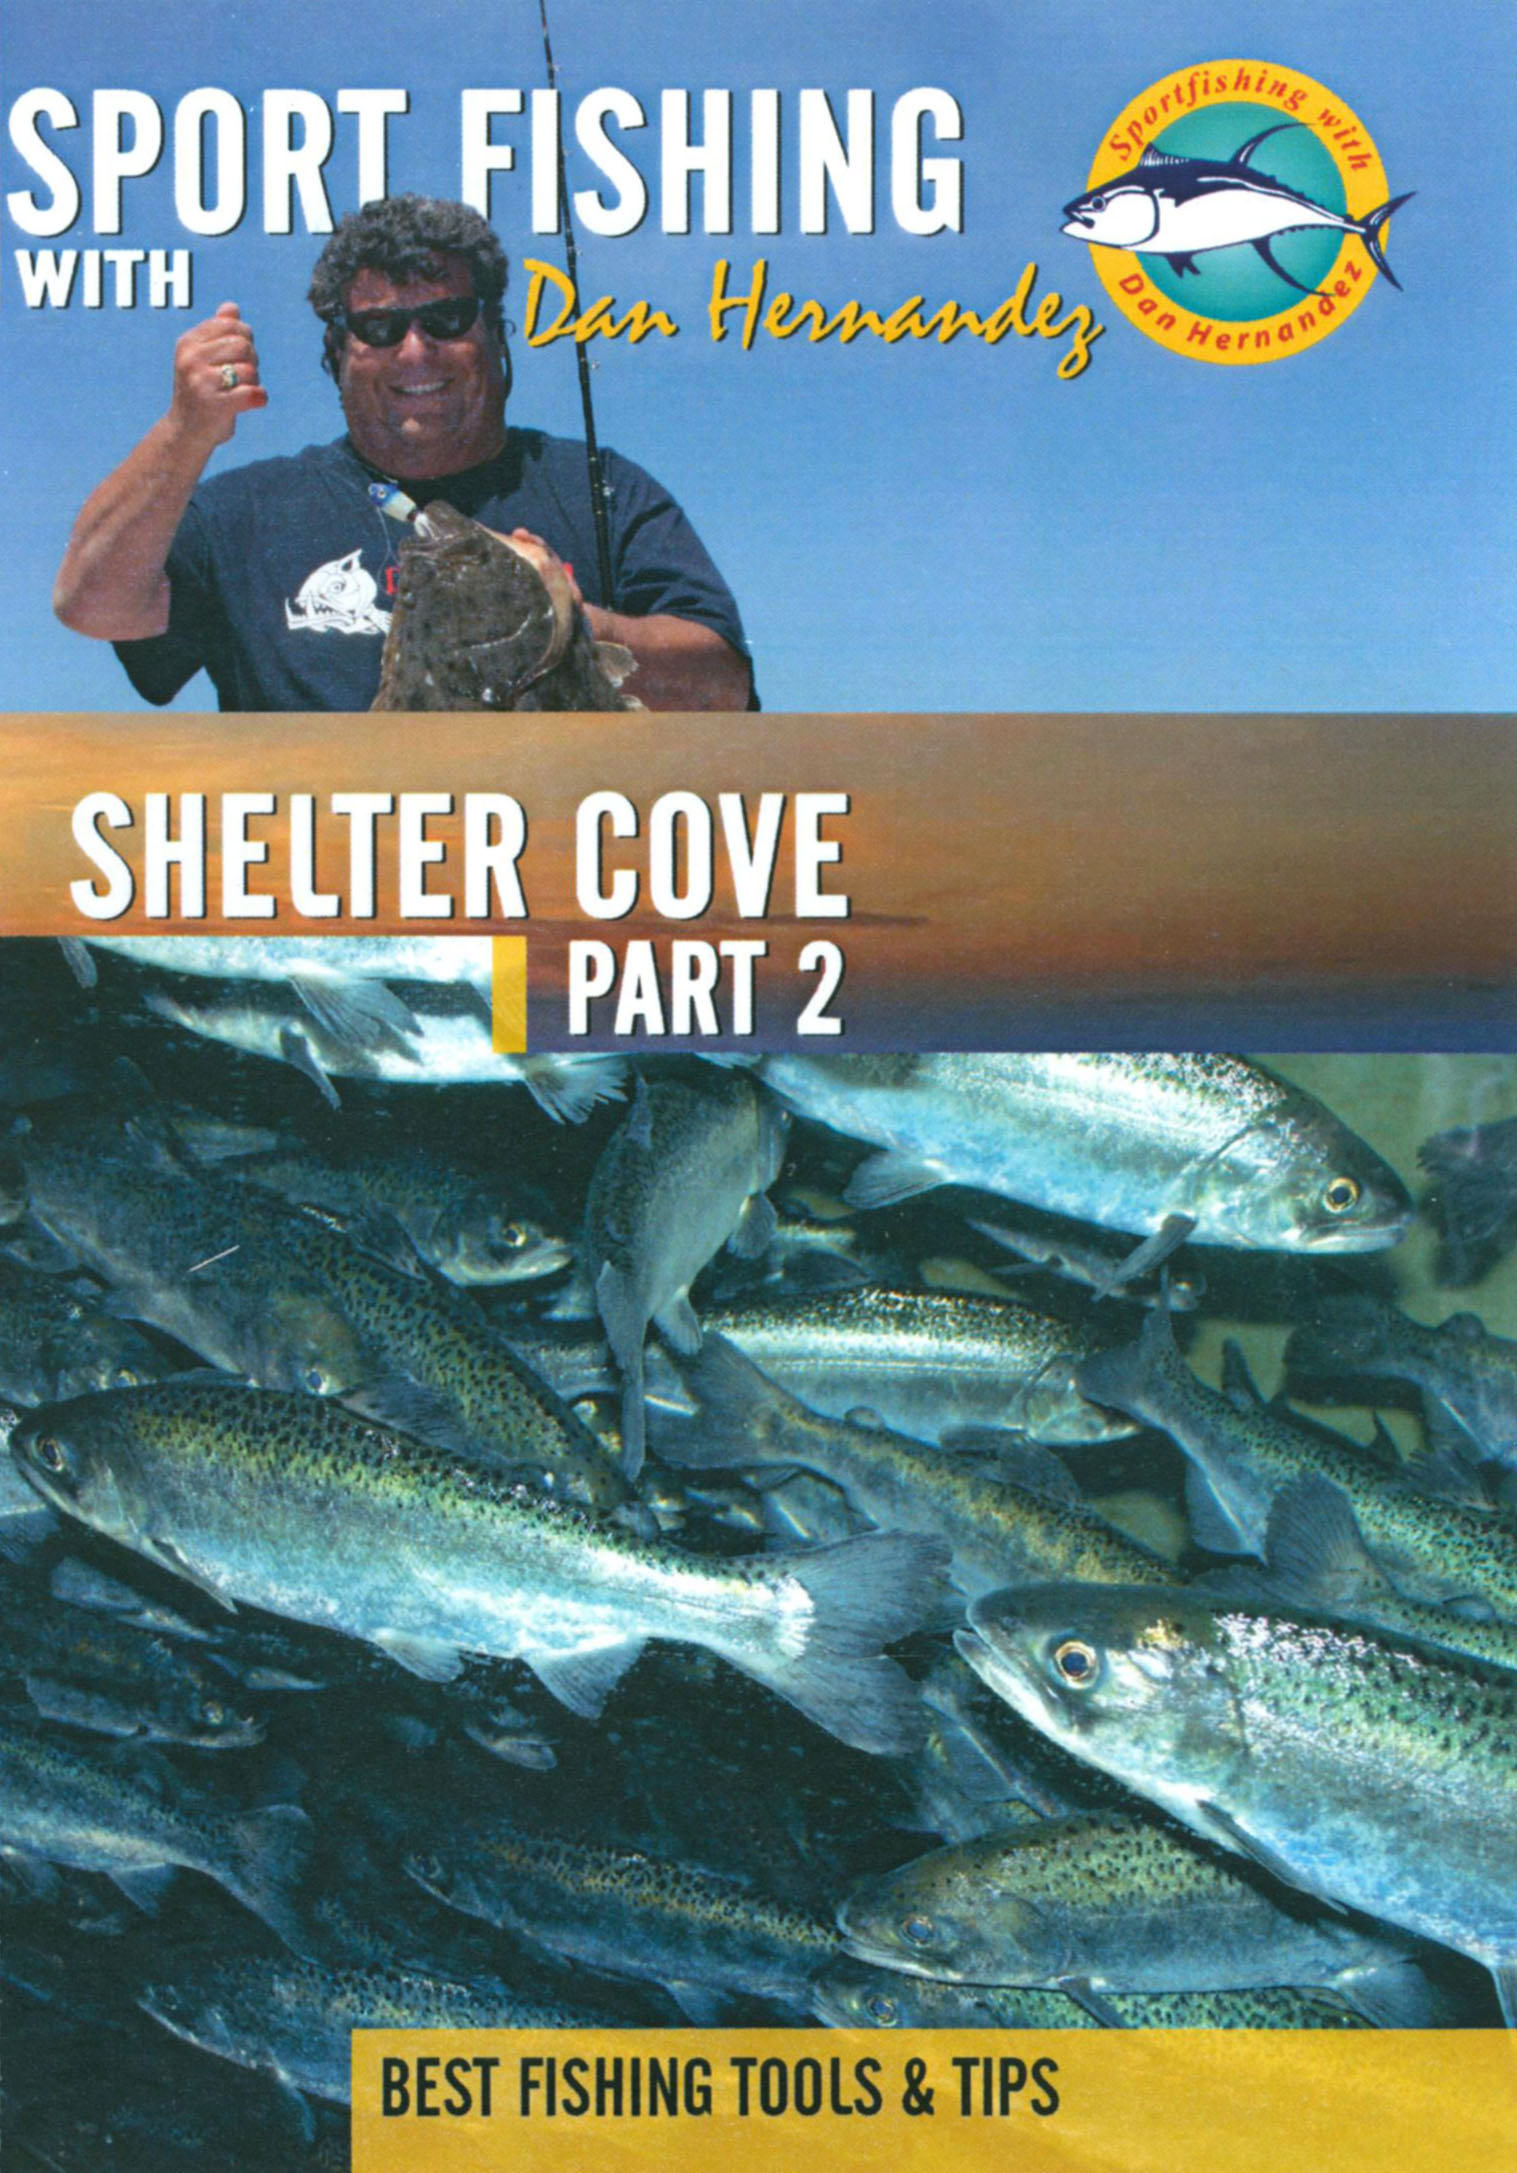 Sport Fishing With Dan Hernandez: Shelter Cove, Part 2